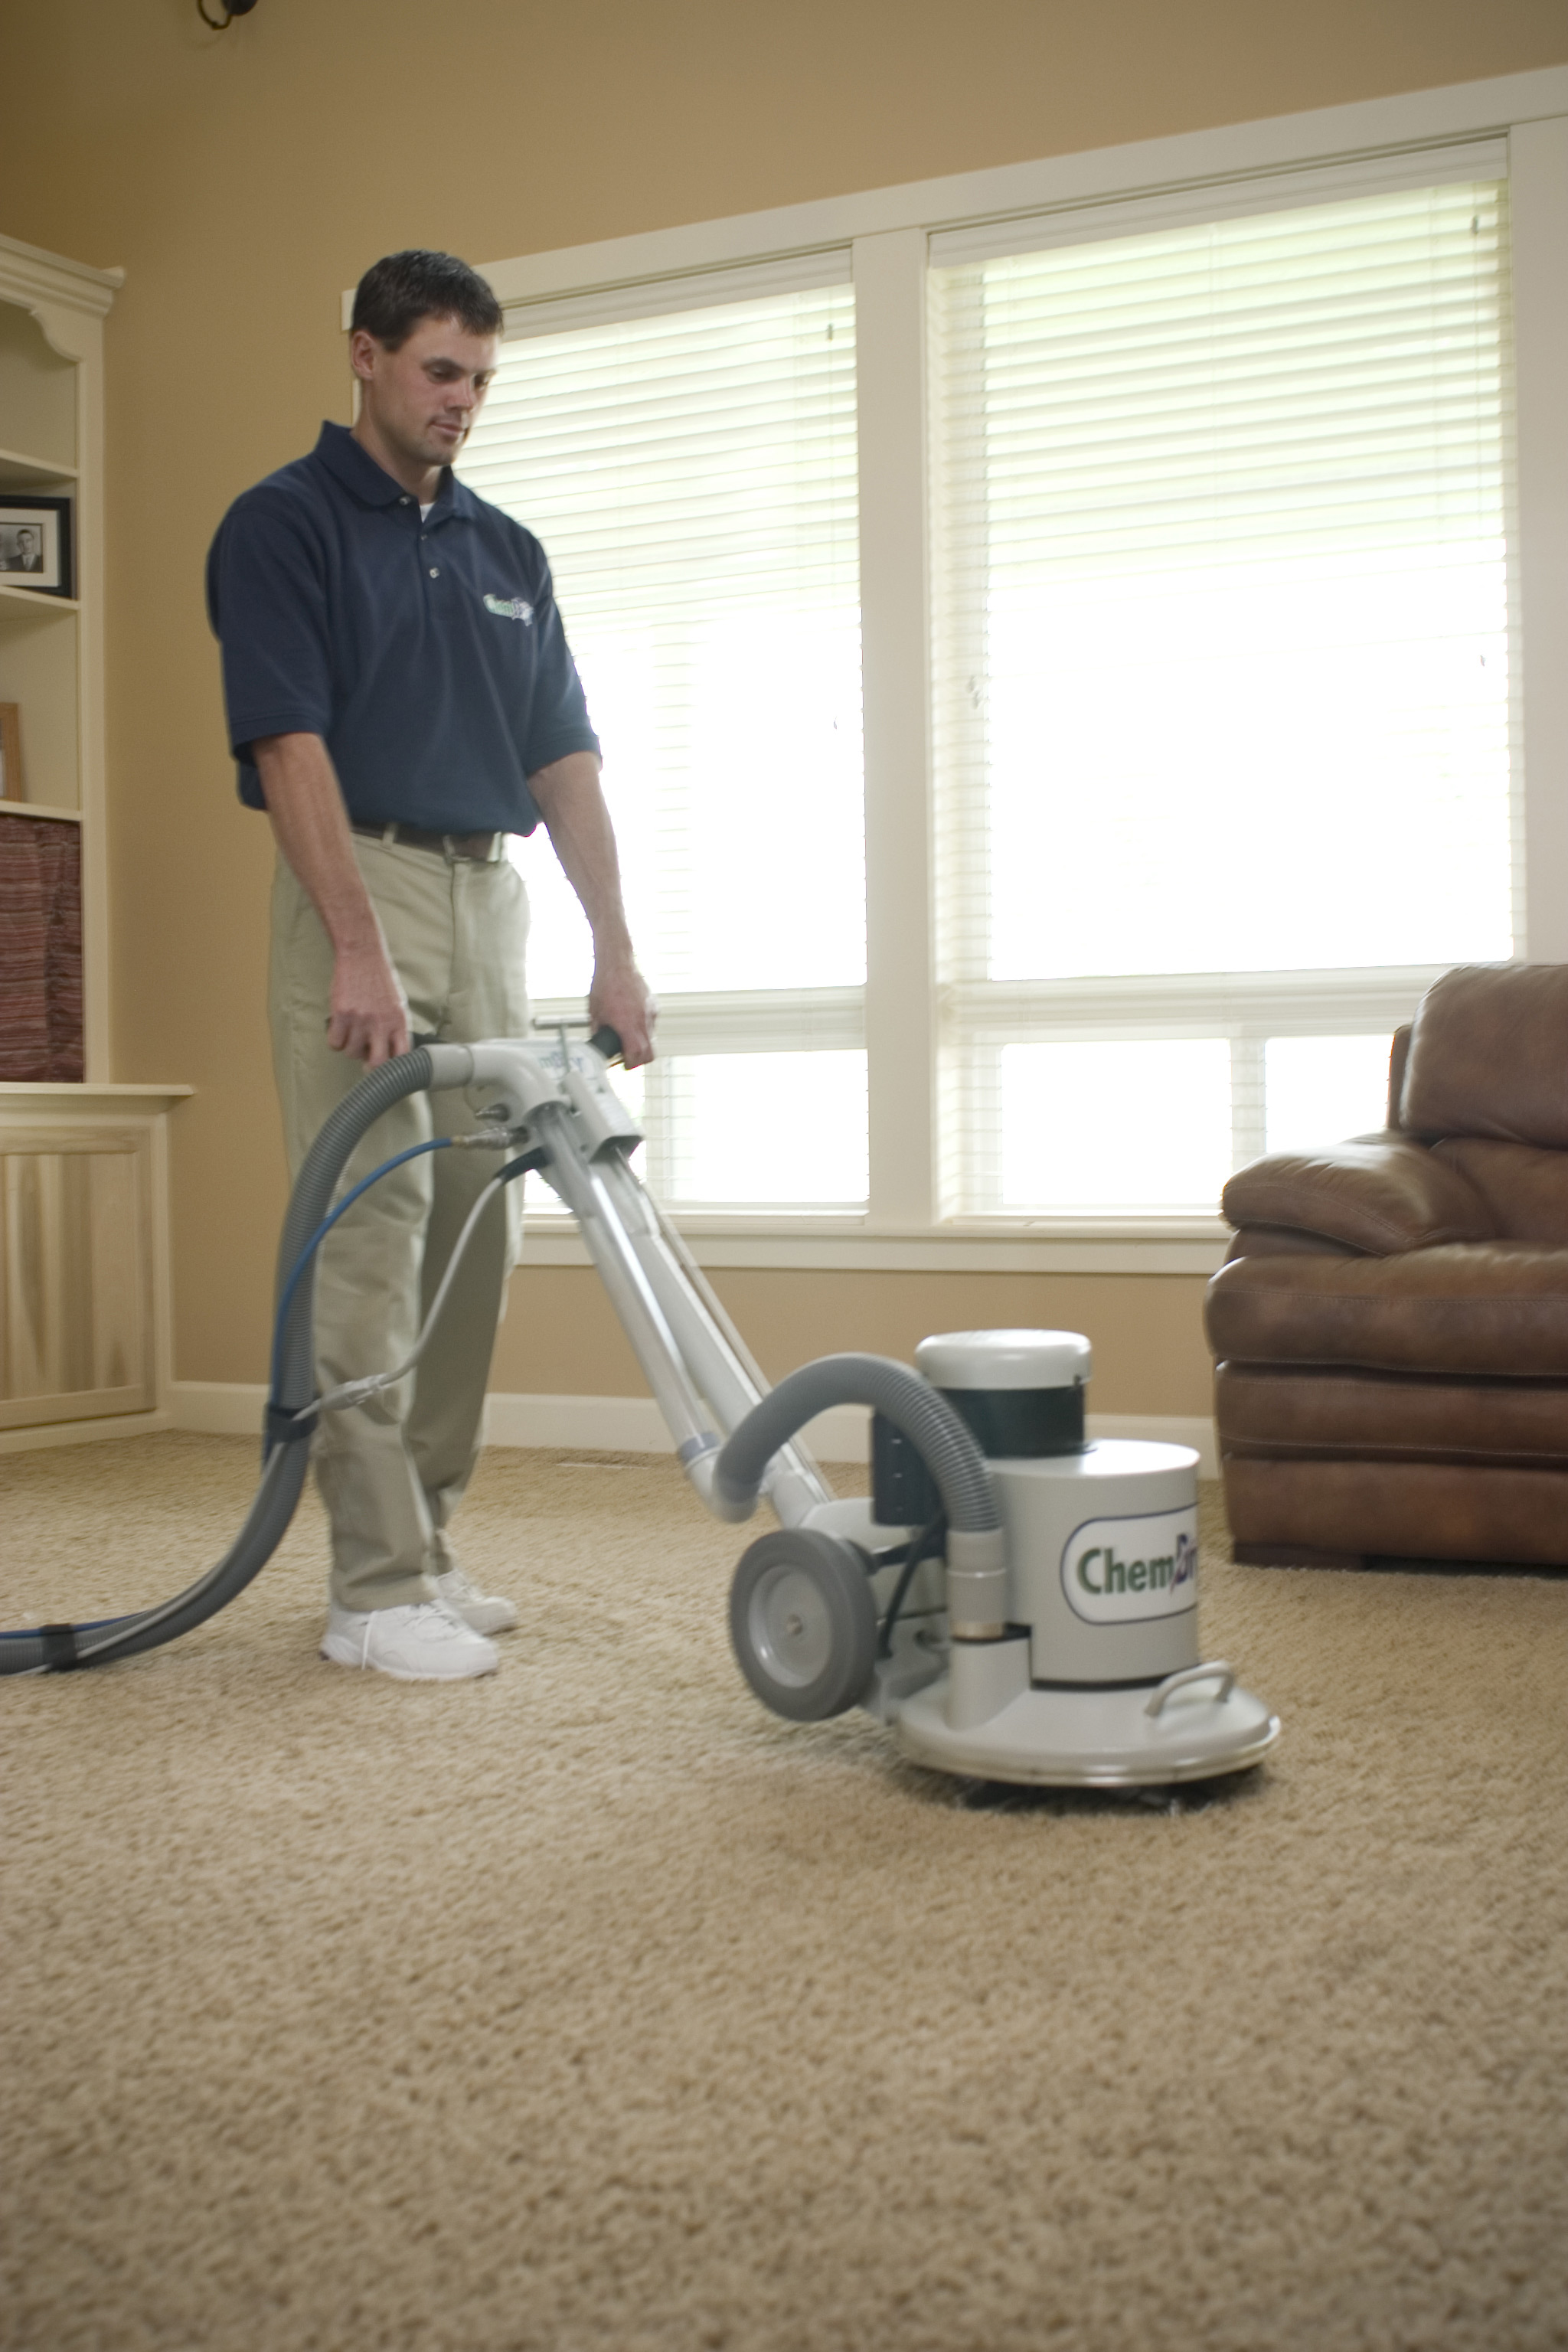 Crossroads Chem-Dry is your healthy home provider for carpet and upholstery cleaning in Carmel